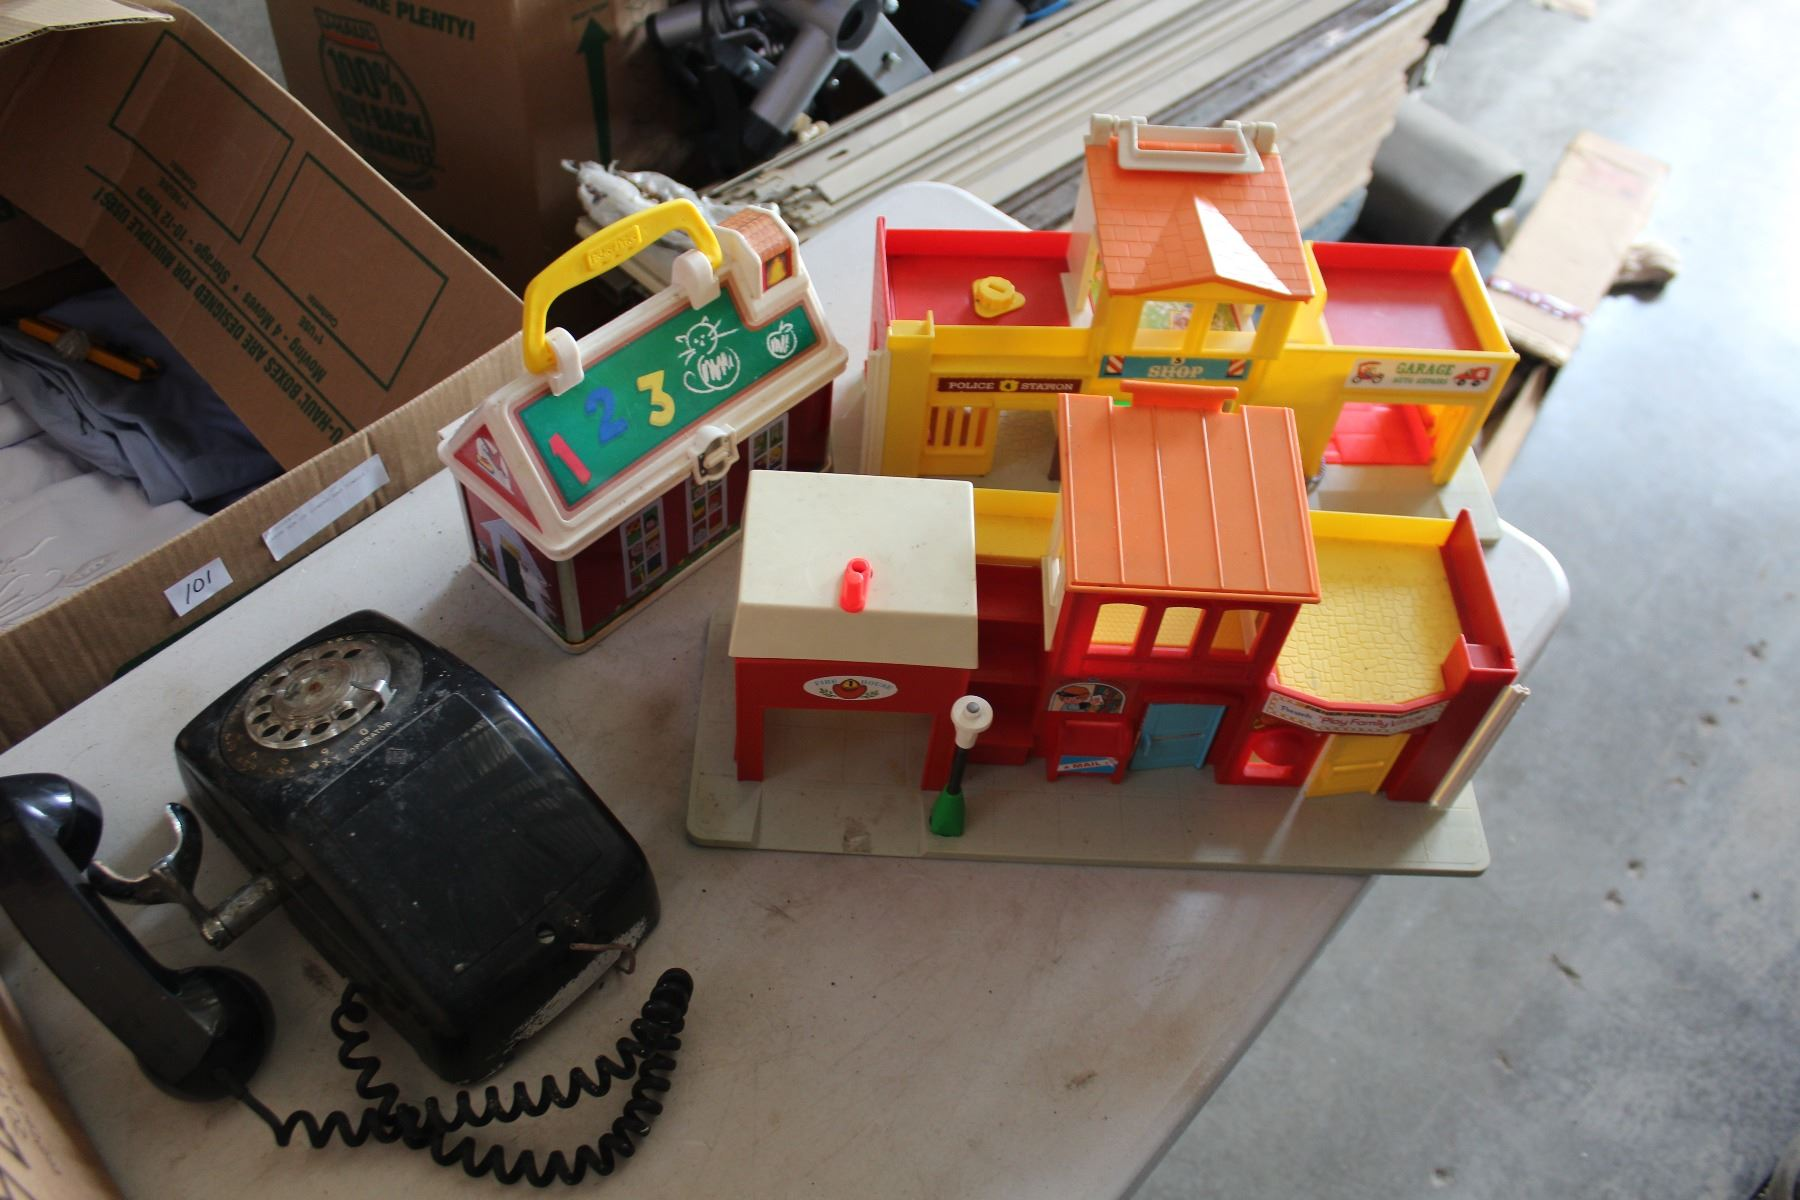 medium resolution of image 1 vintage fisher price toys and rotary phone